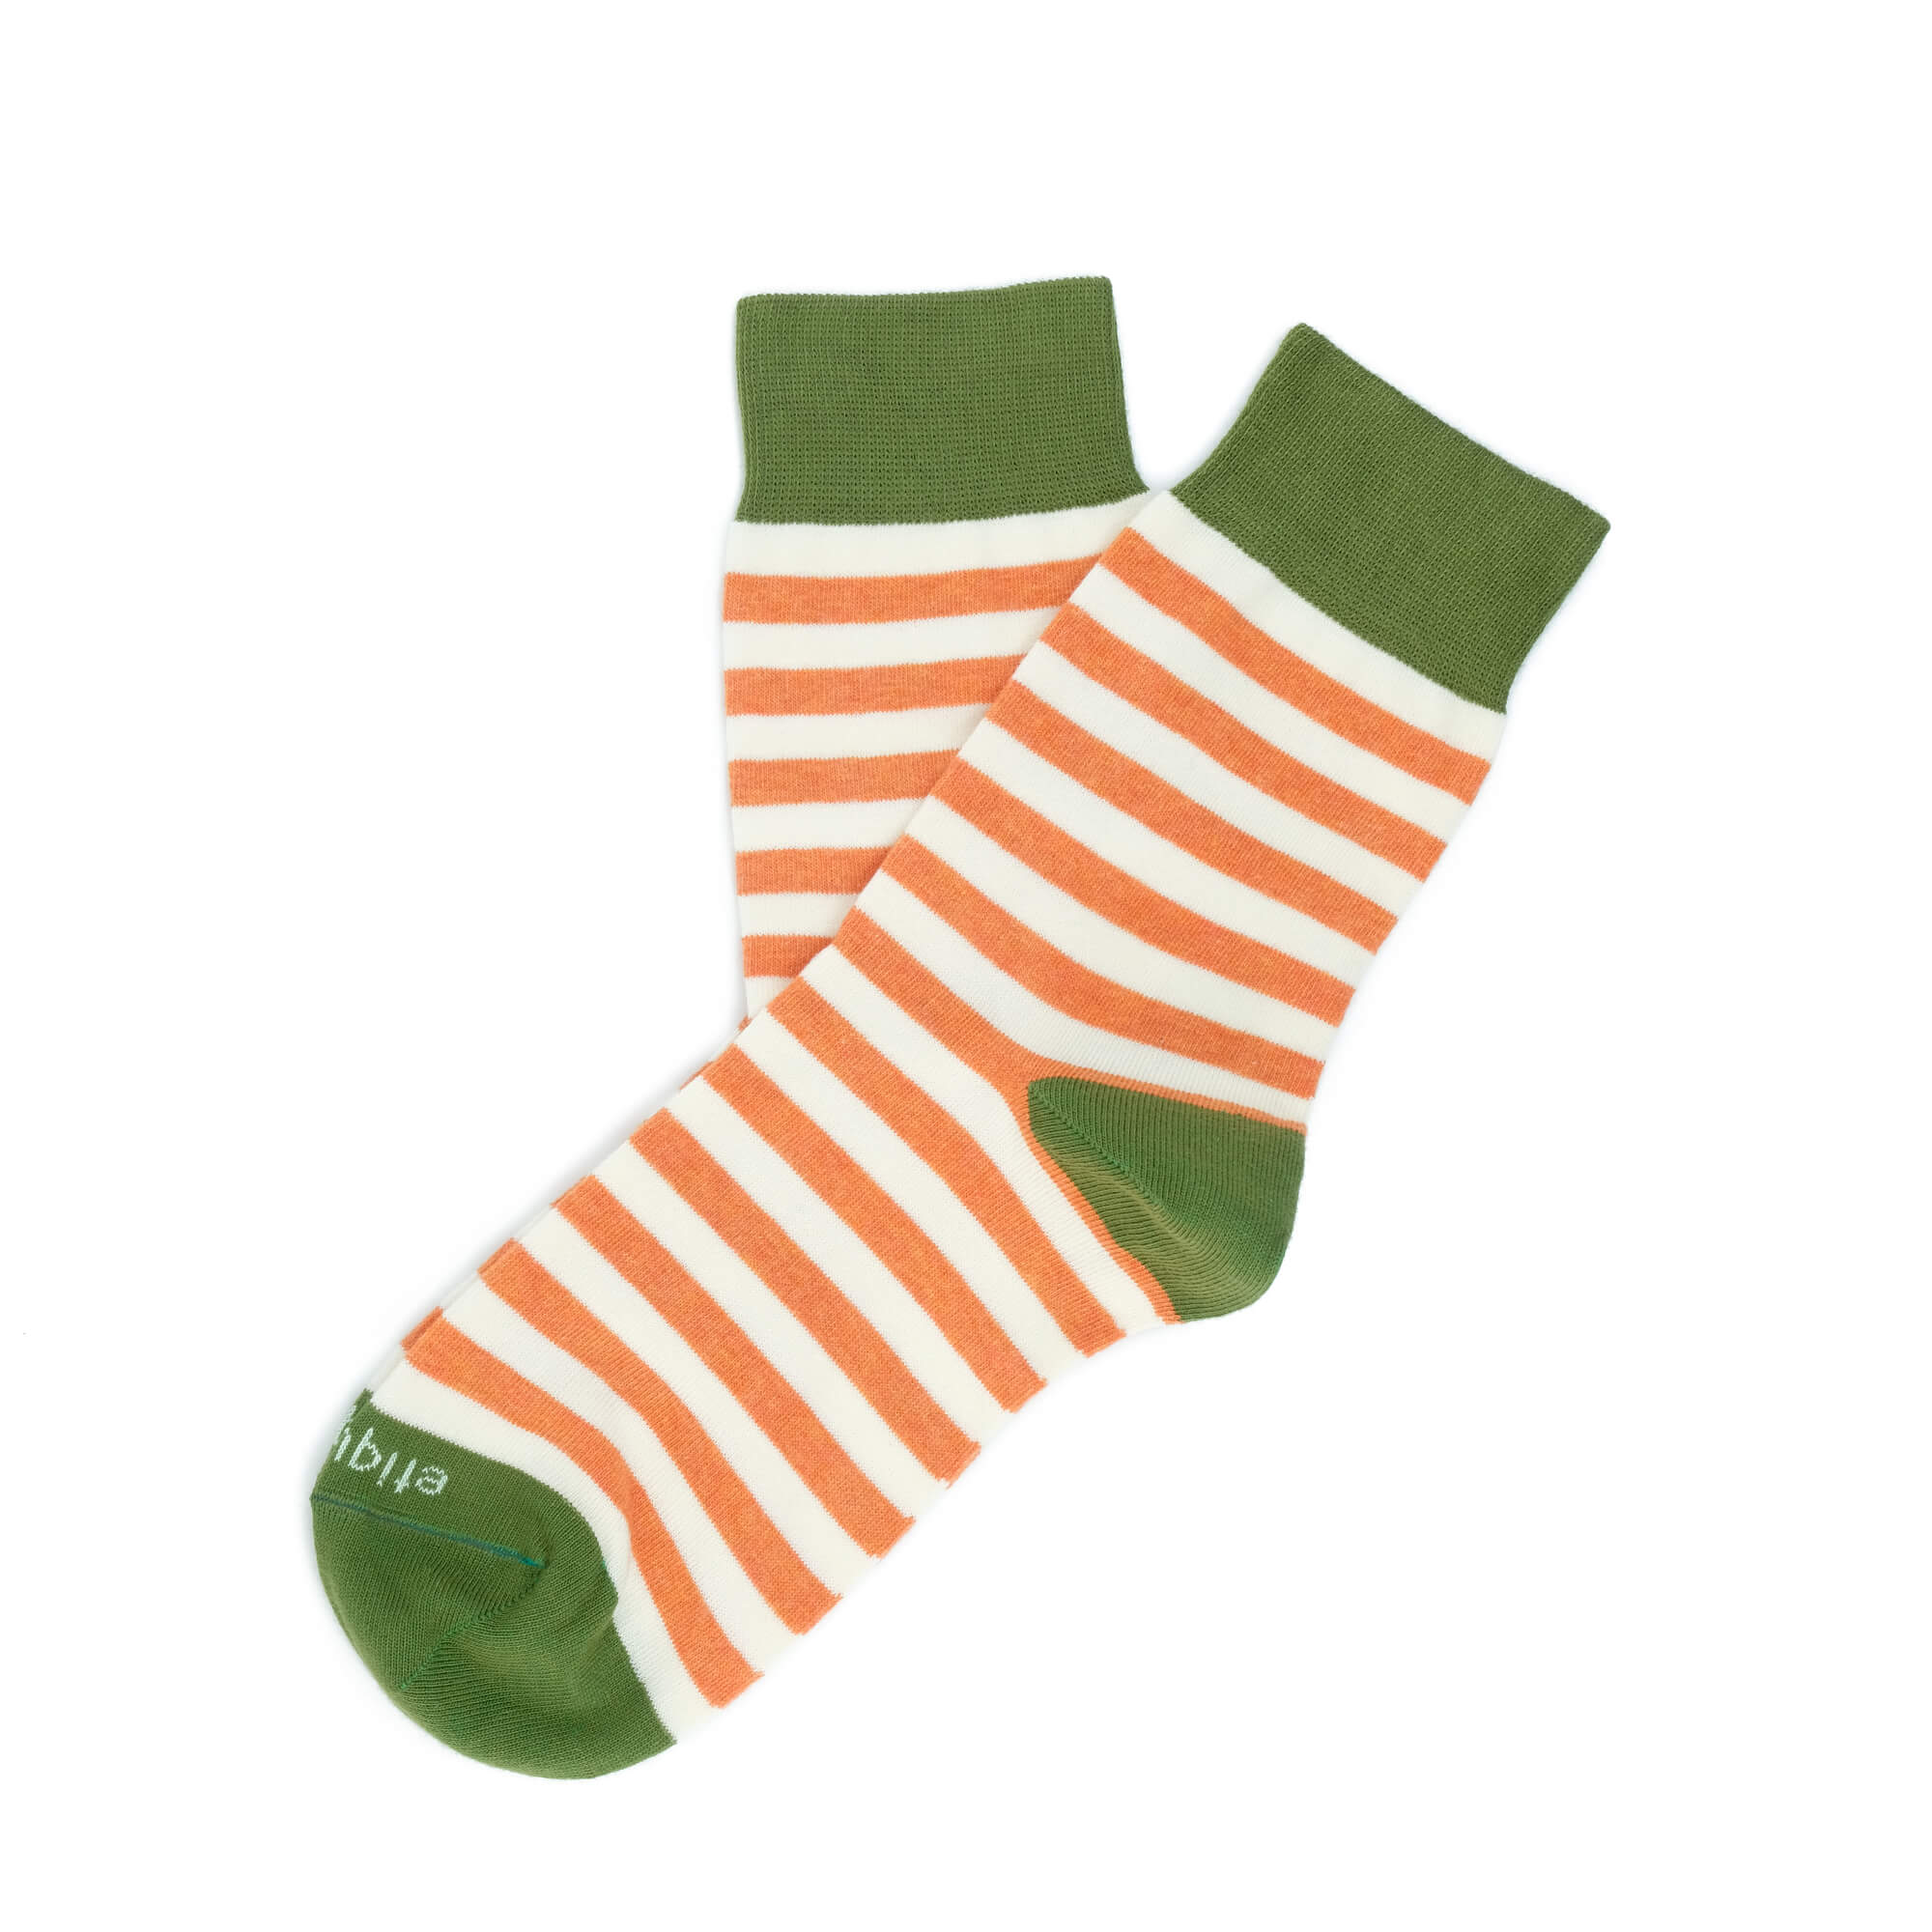 Womens Socks - Abbey Stripes Women's Socks - Orange/Green⎪Etiquette Clothiers